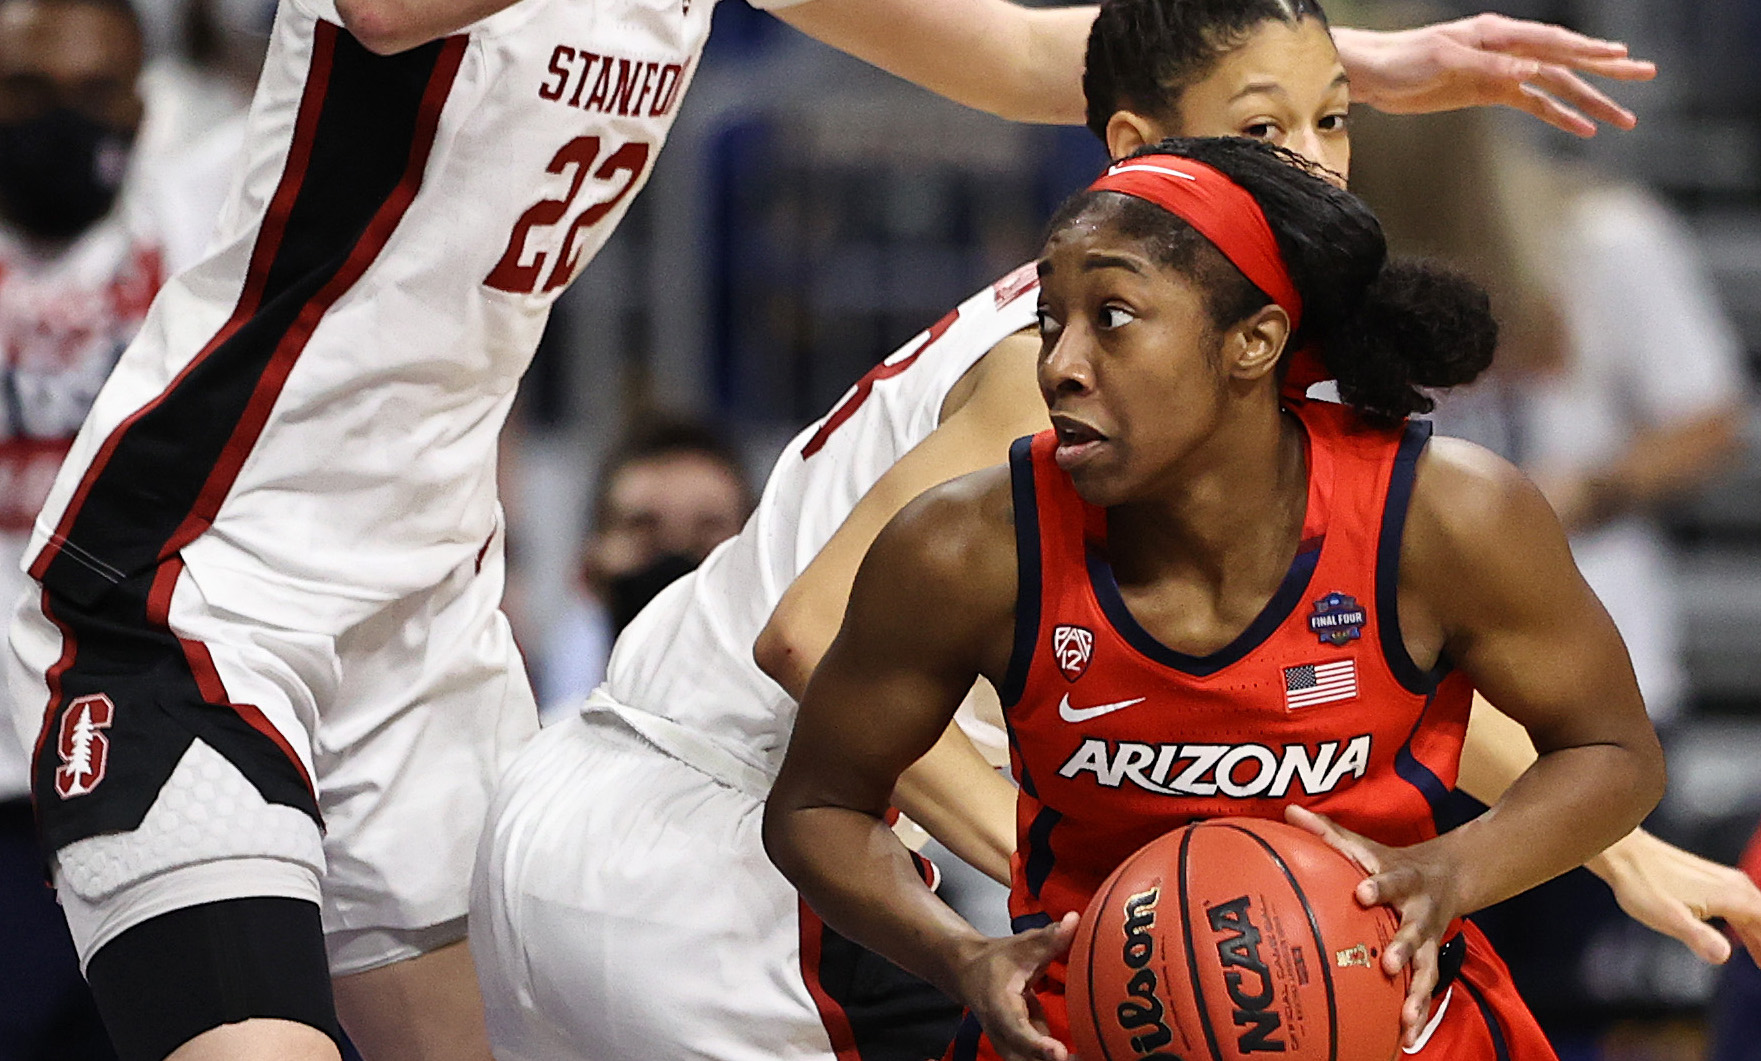 SAN ANTONIO, TEXAS - APRIL 04: Aari McDonald #2 of the Arizona Wildcats is pressured by Cameron Brink #22 of the Stanford Cardinals in the National Championship game of the 2021 NCAA Women's Basketball Tournament at the Alamodome on April 04, 2021 in San Antonio, Texas. (Photo by Elsa/Getty Images) ORG XMIT: 775630874 ORIG FILE ID: 1310817631